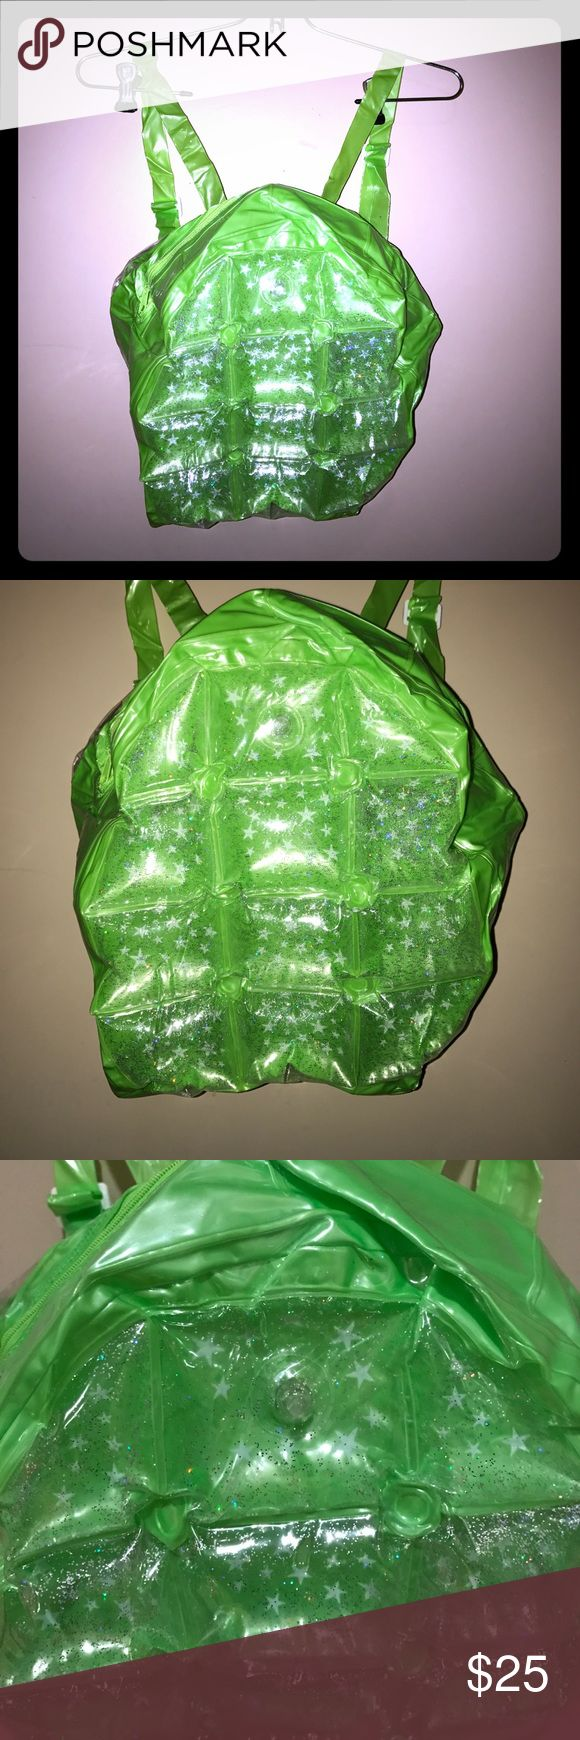 Bubble backpack 90s green bubble backpack with white stars and rainbow glitter. Inflatable backpack. Brand-new. Bags Backpacks